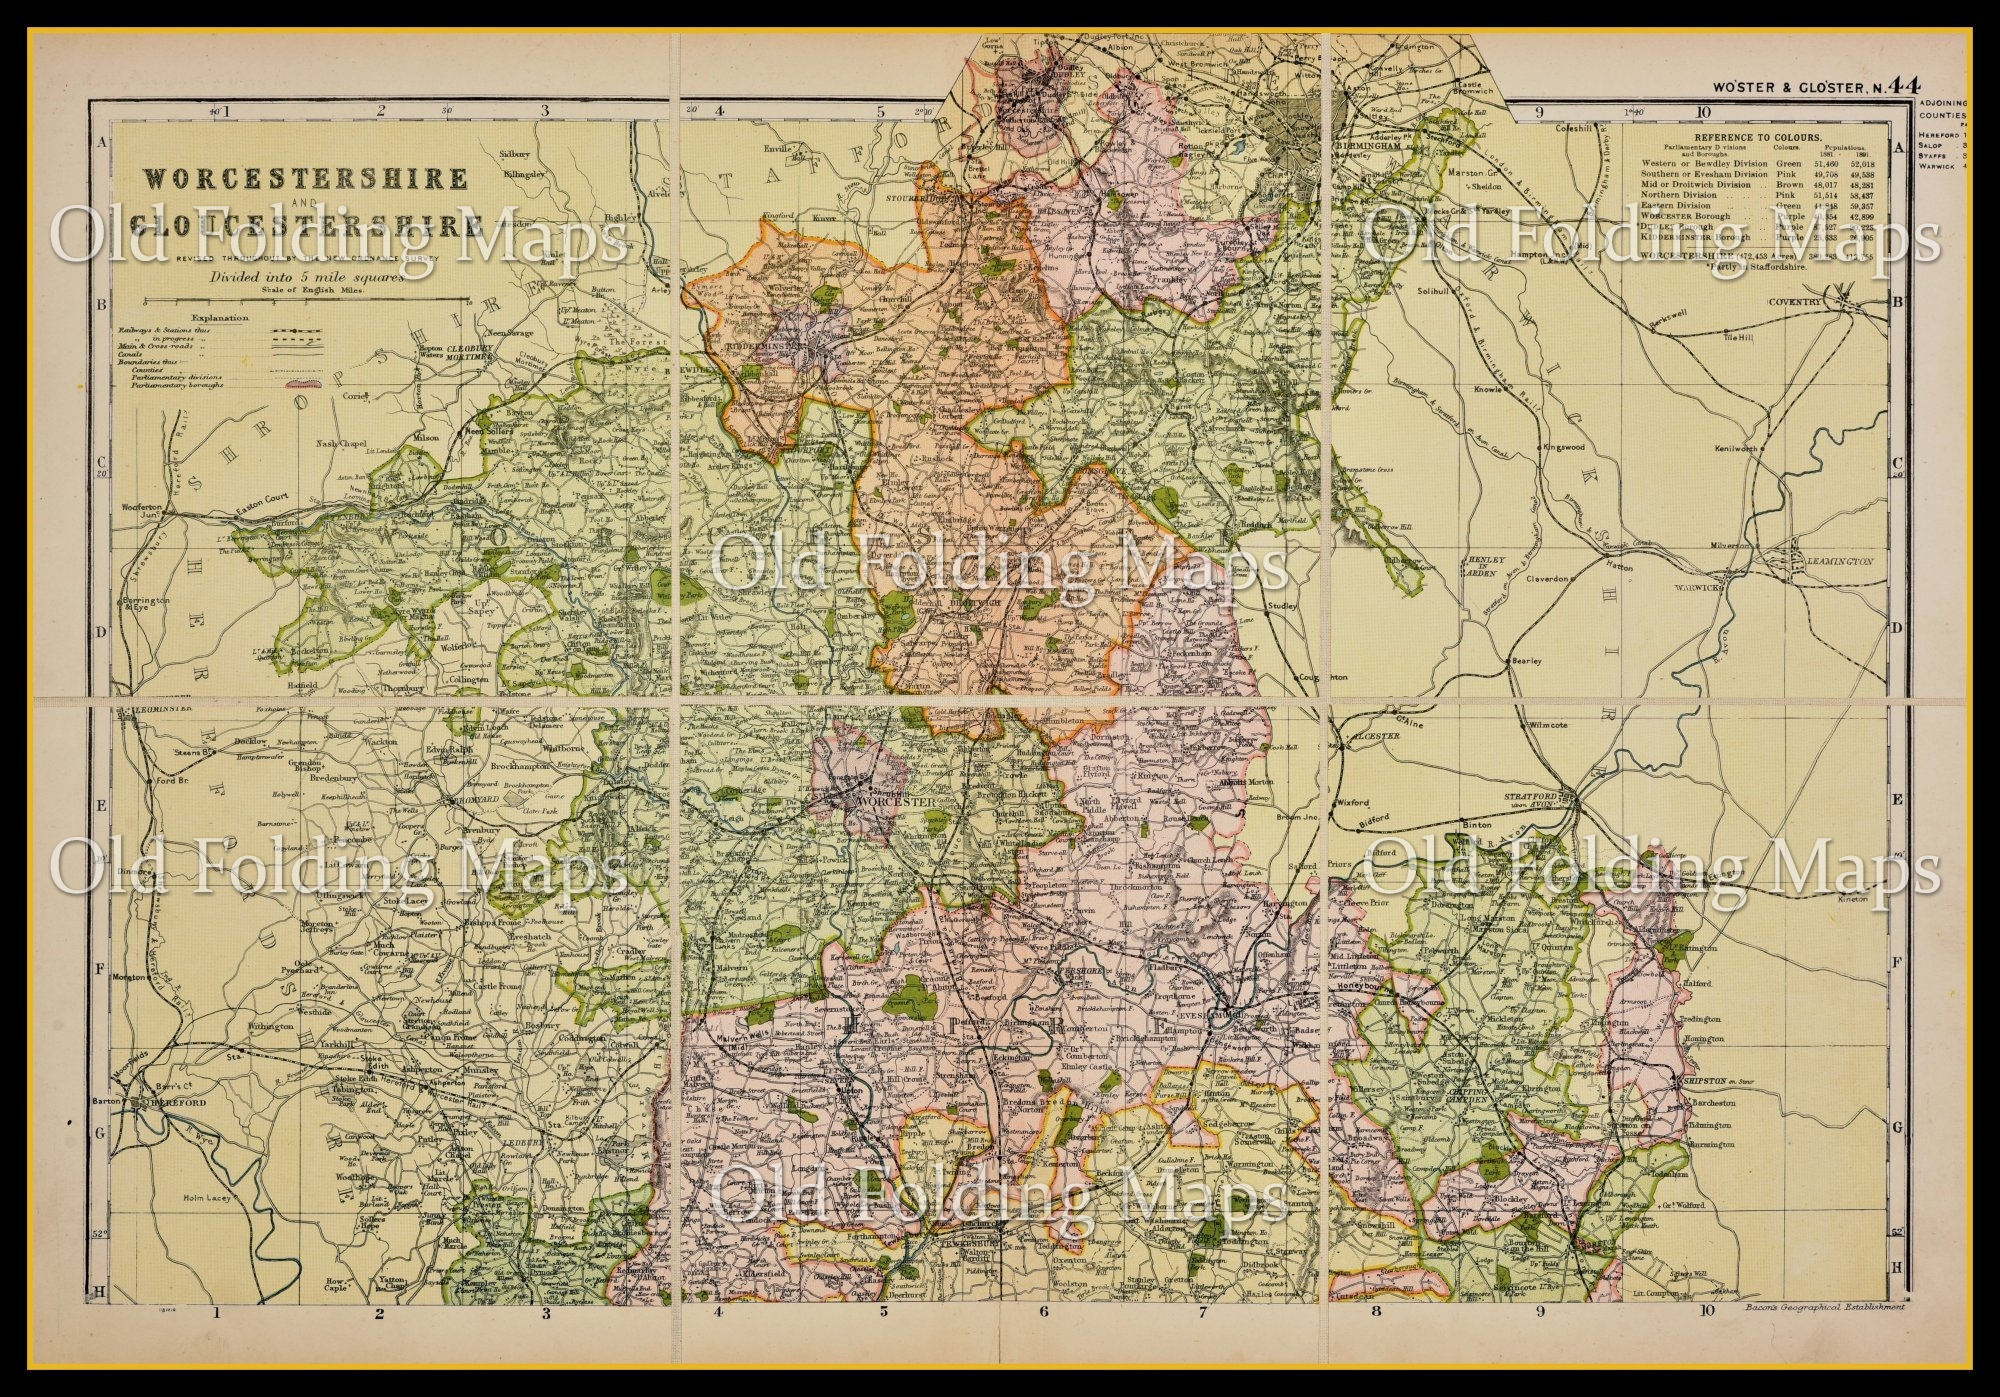 Antique County Map of Worcestershire and Gloucestershire circa 1897